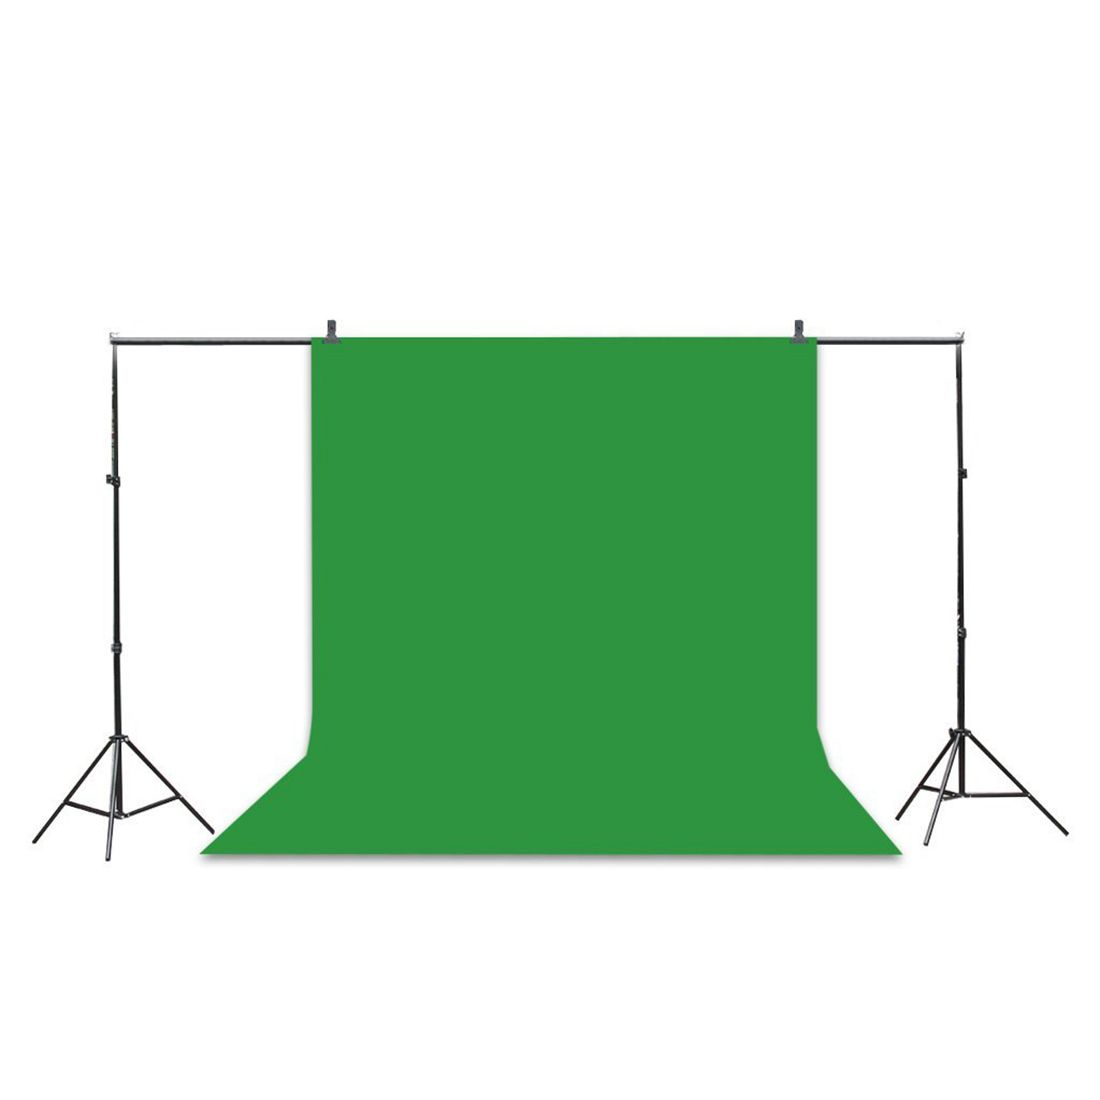 Professional Studio Background Stand Kit - 10x6.5ft Photo Backdrop Support Stand Kit + Backdrop Screen (Black,Green,White) + 2Professional Studio Background Stand Kit - 10x6.5ft Photo Backdrop Support Stand Kit + Backdrop Screen (Black,Green,White) + 2